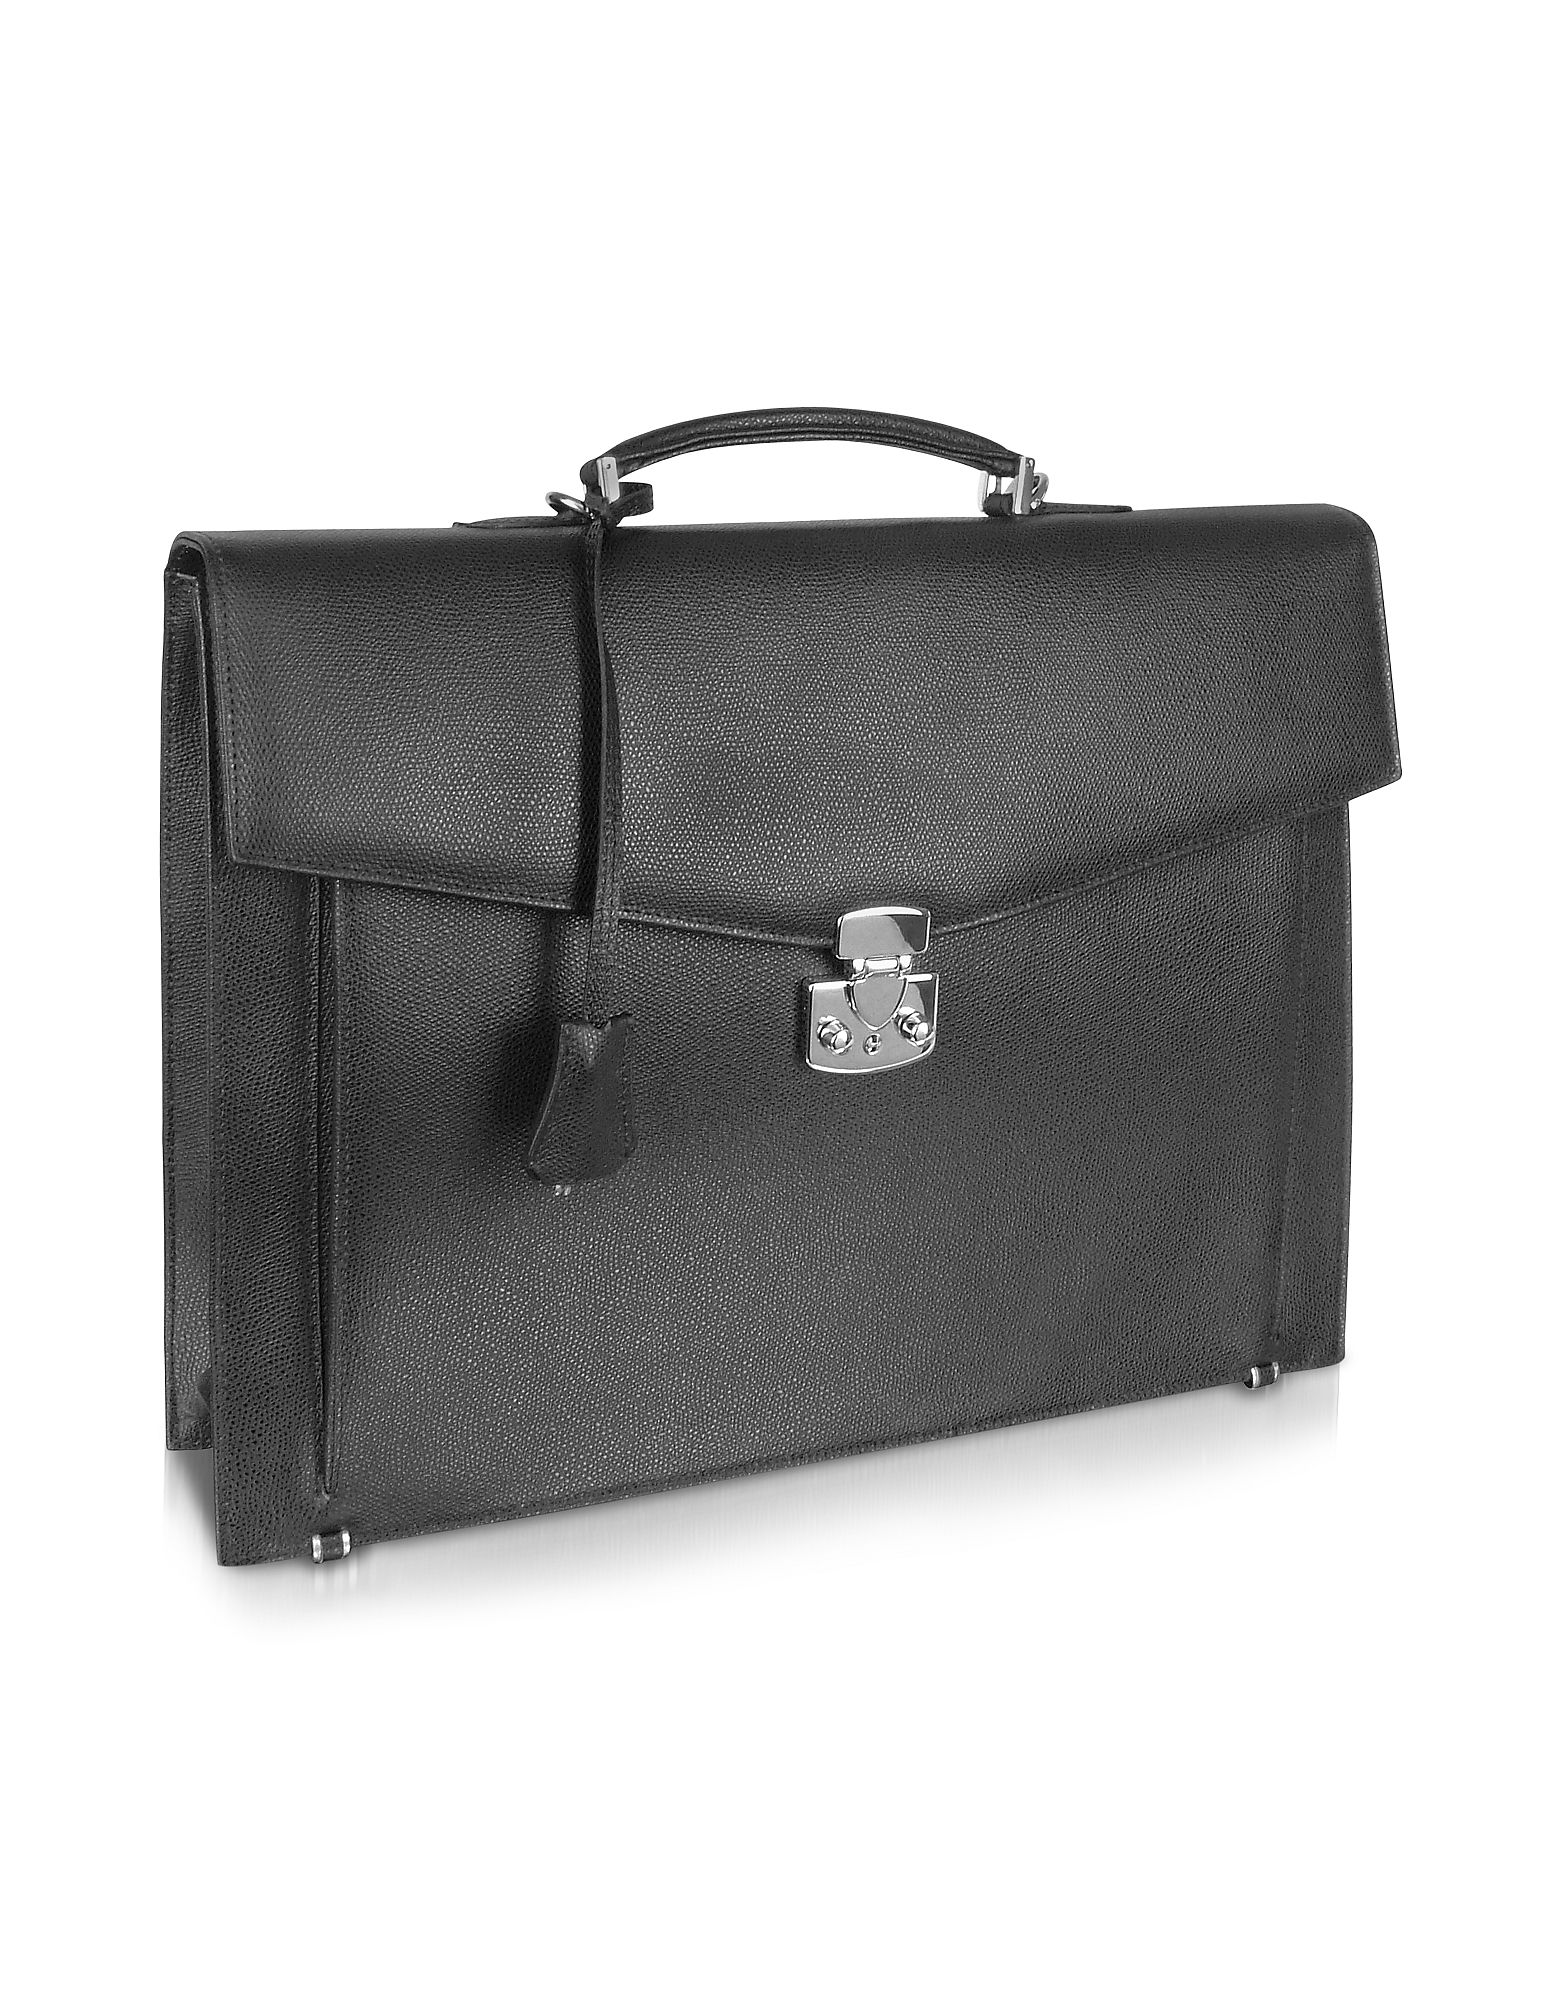 Fontanelli Designer Briefcases,  Men's Black Grained Leather Briefcase